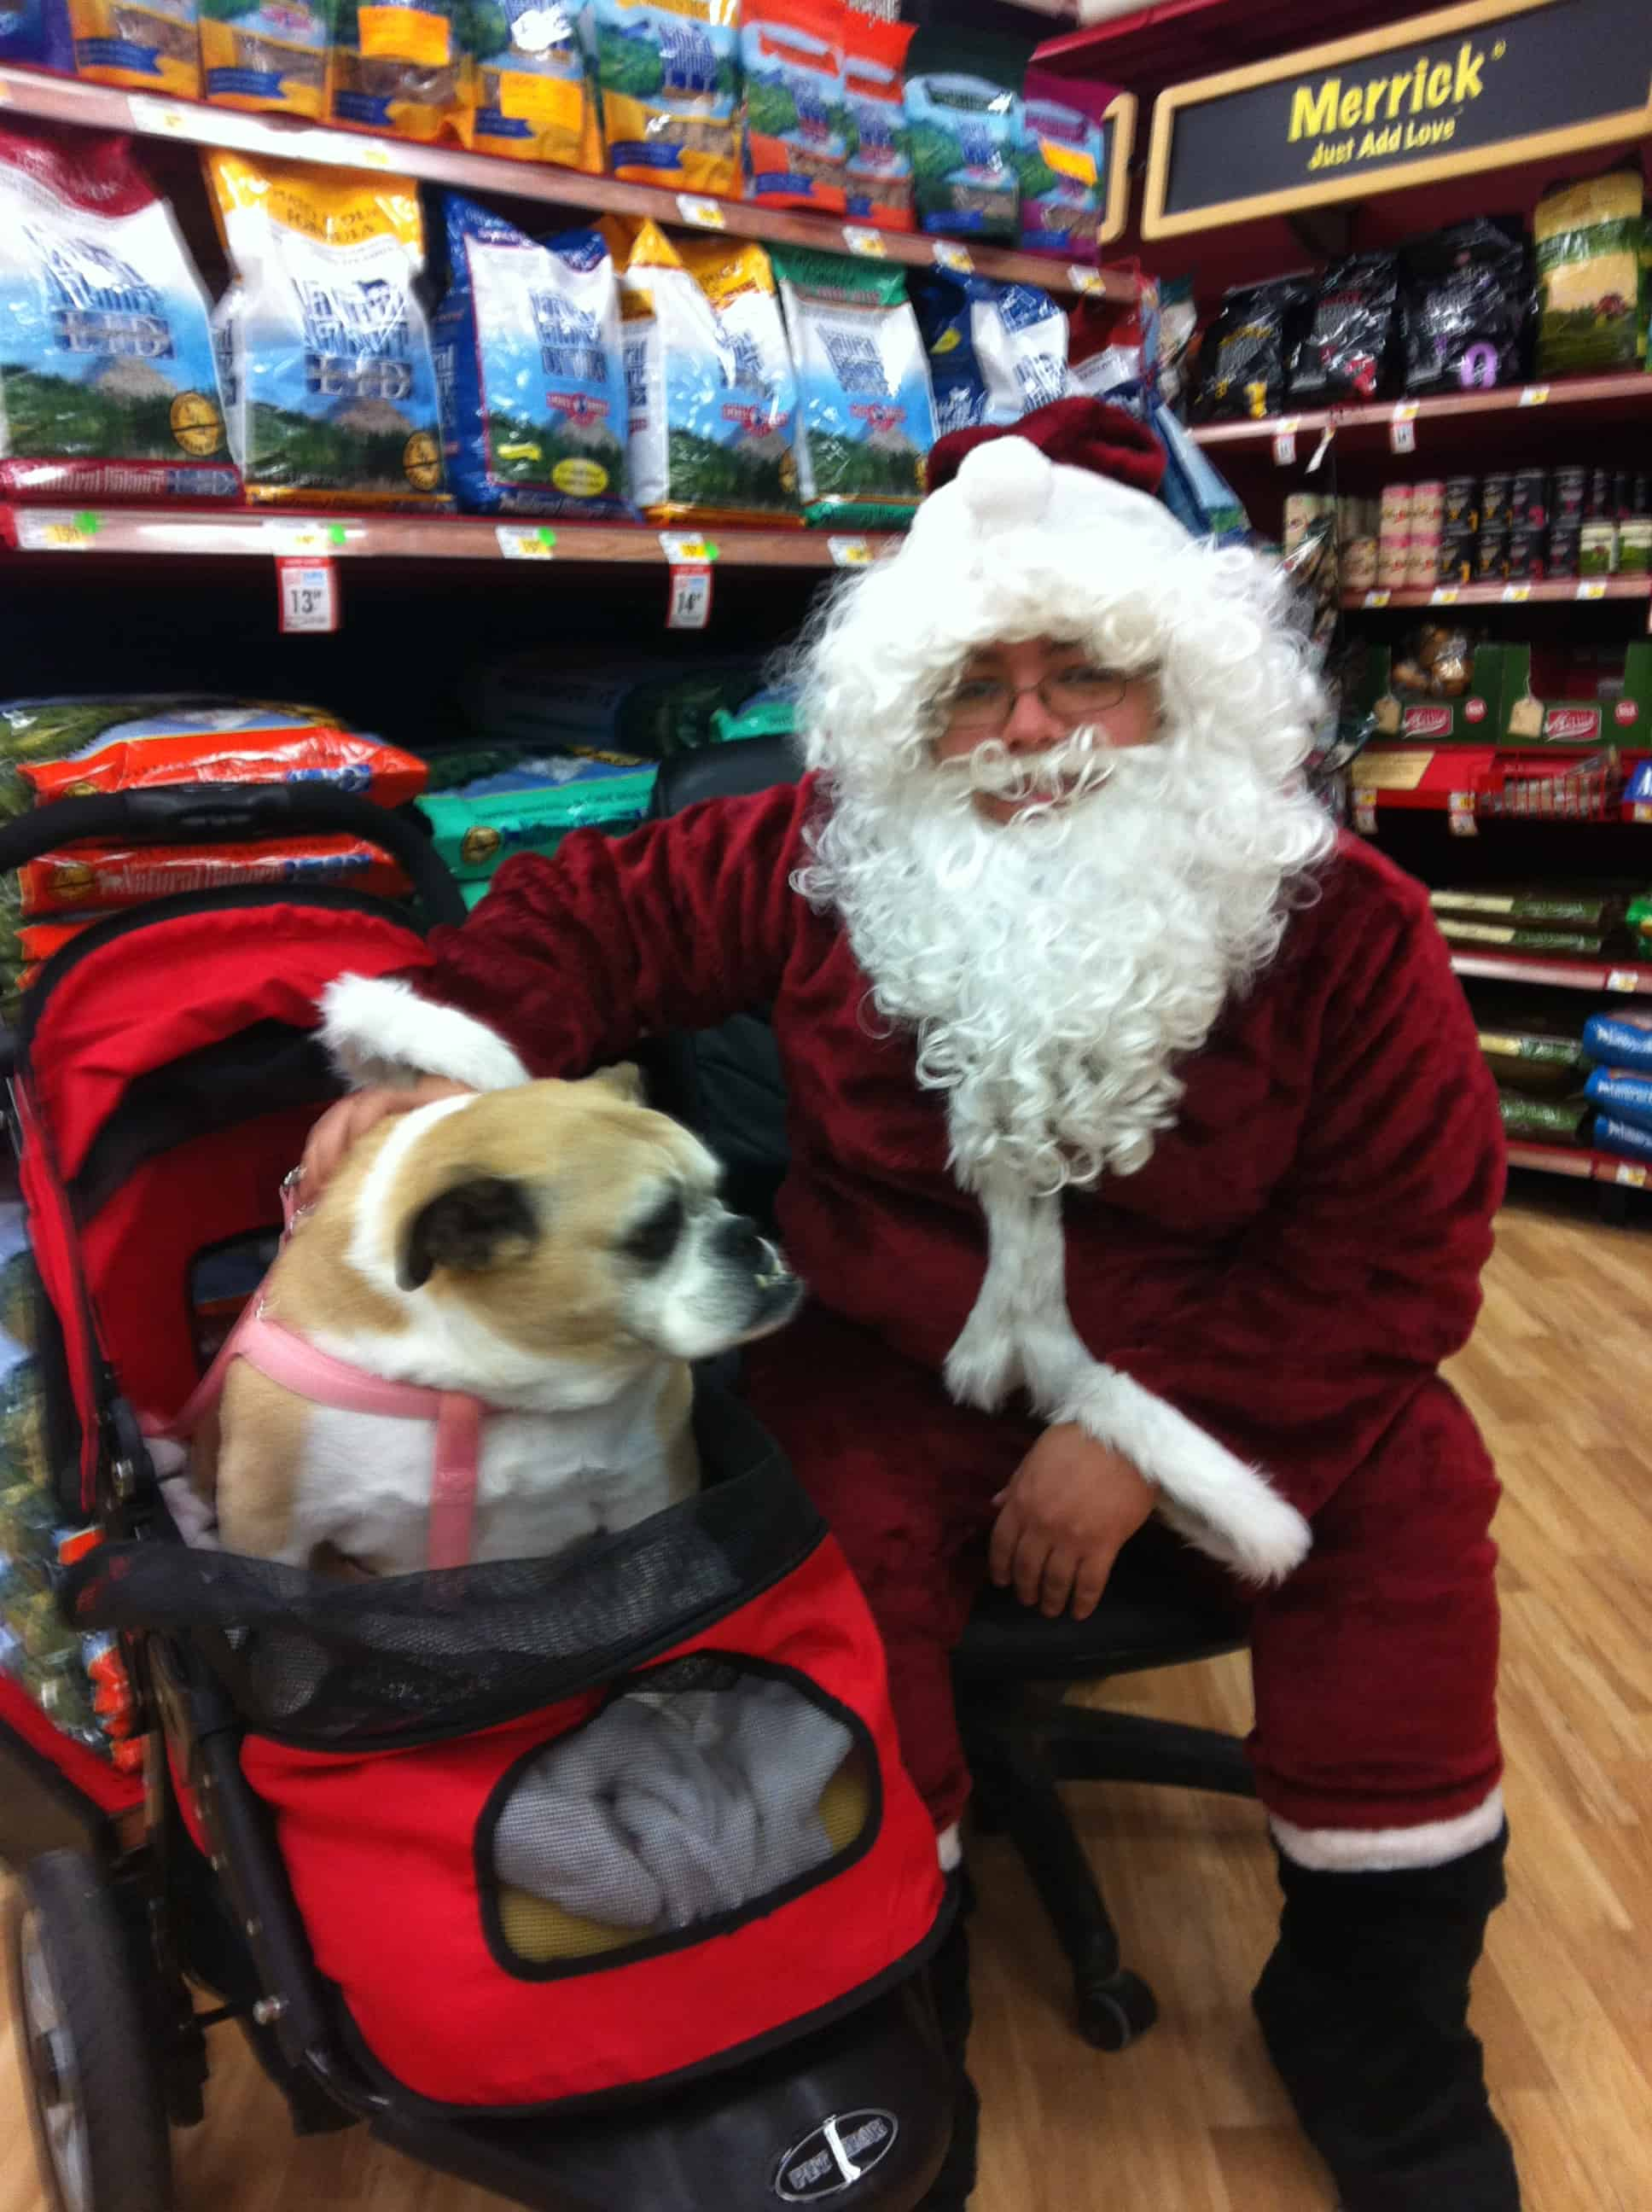 Snoopy visiting Santa in her stroller - senior English Bulldogs and aging